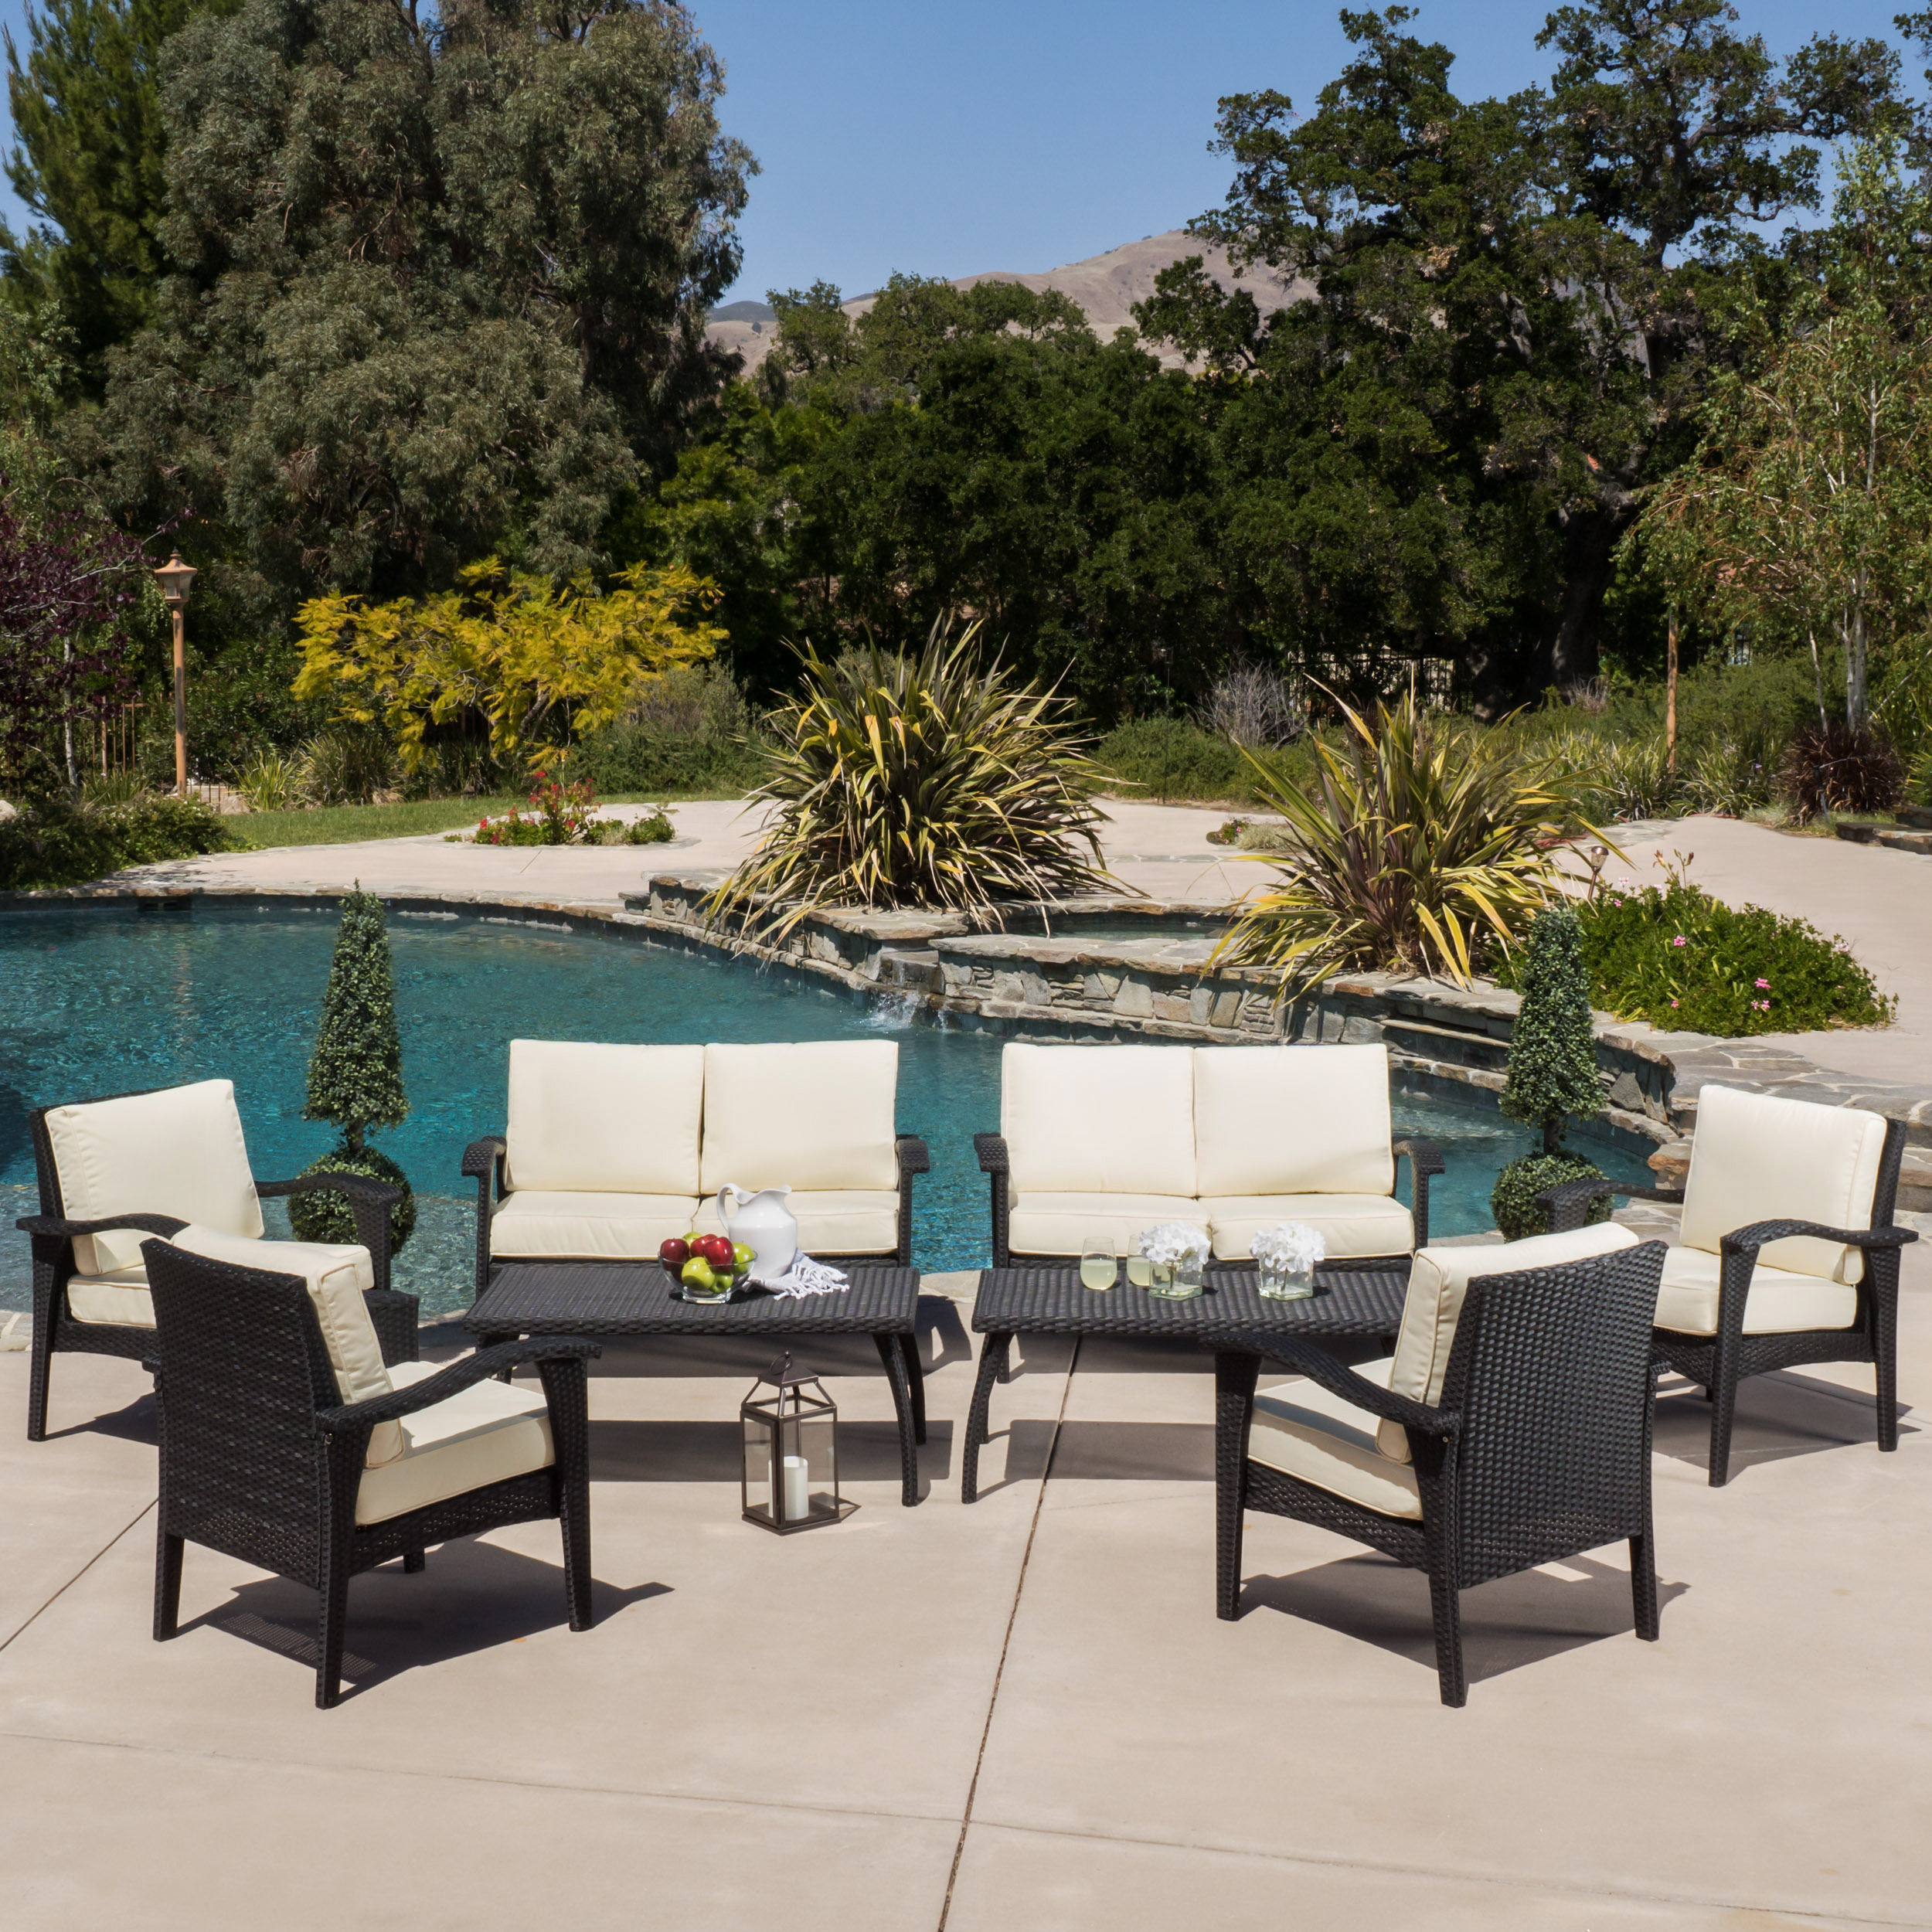 Garrett Outdoor 8 piece Wicker Seating Set & Cushions, Black